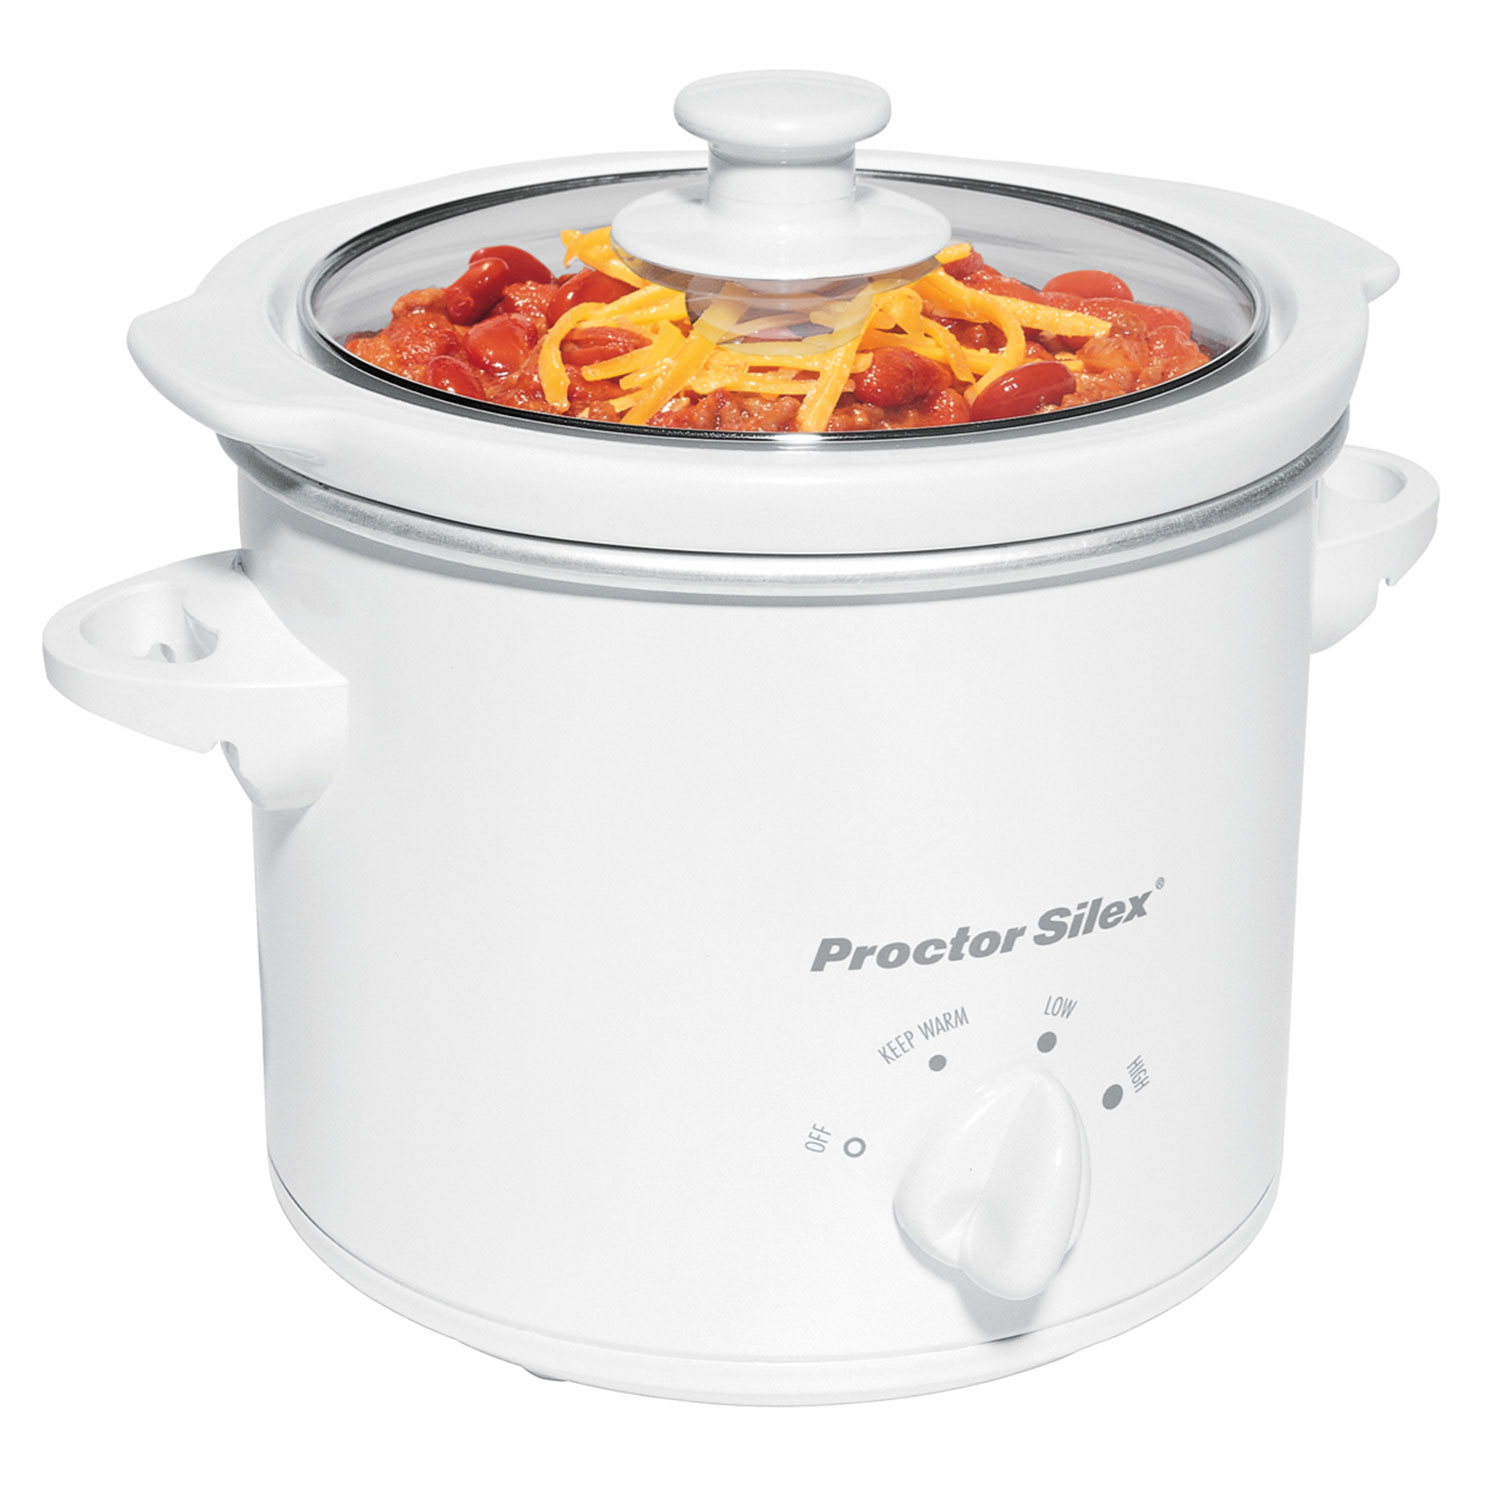 Round 1.5 Quart Slow Cooker-33015Y Small Size